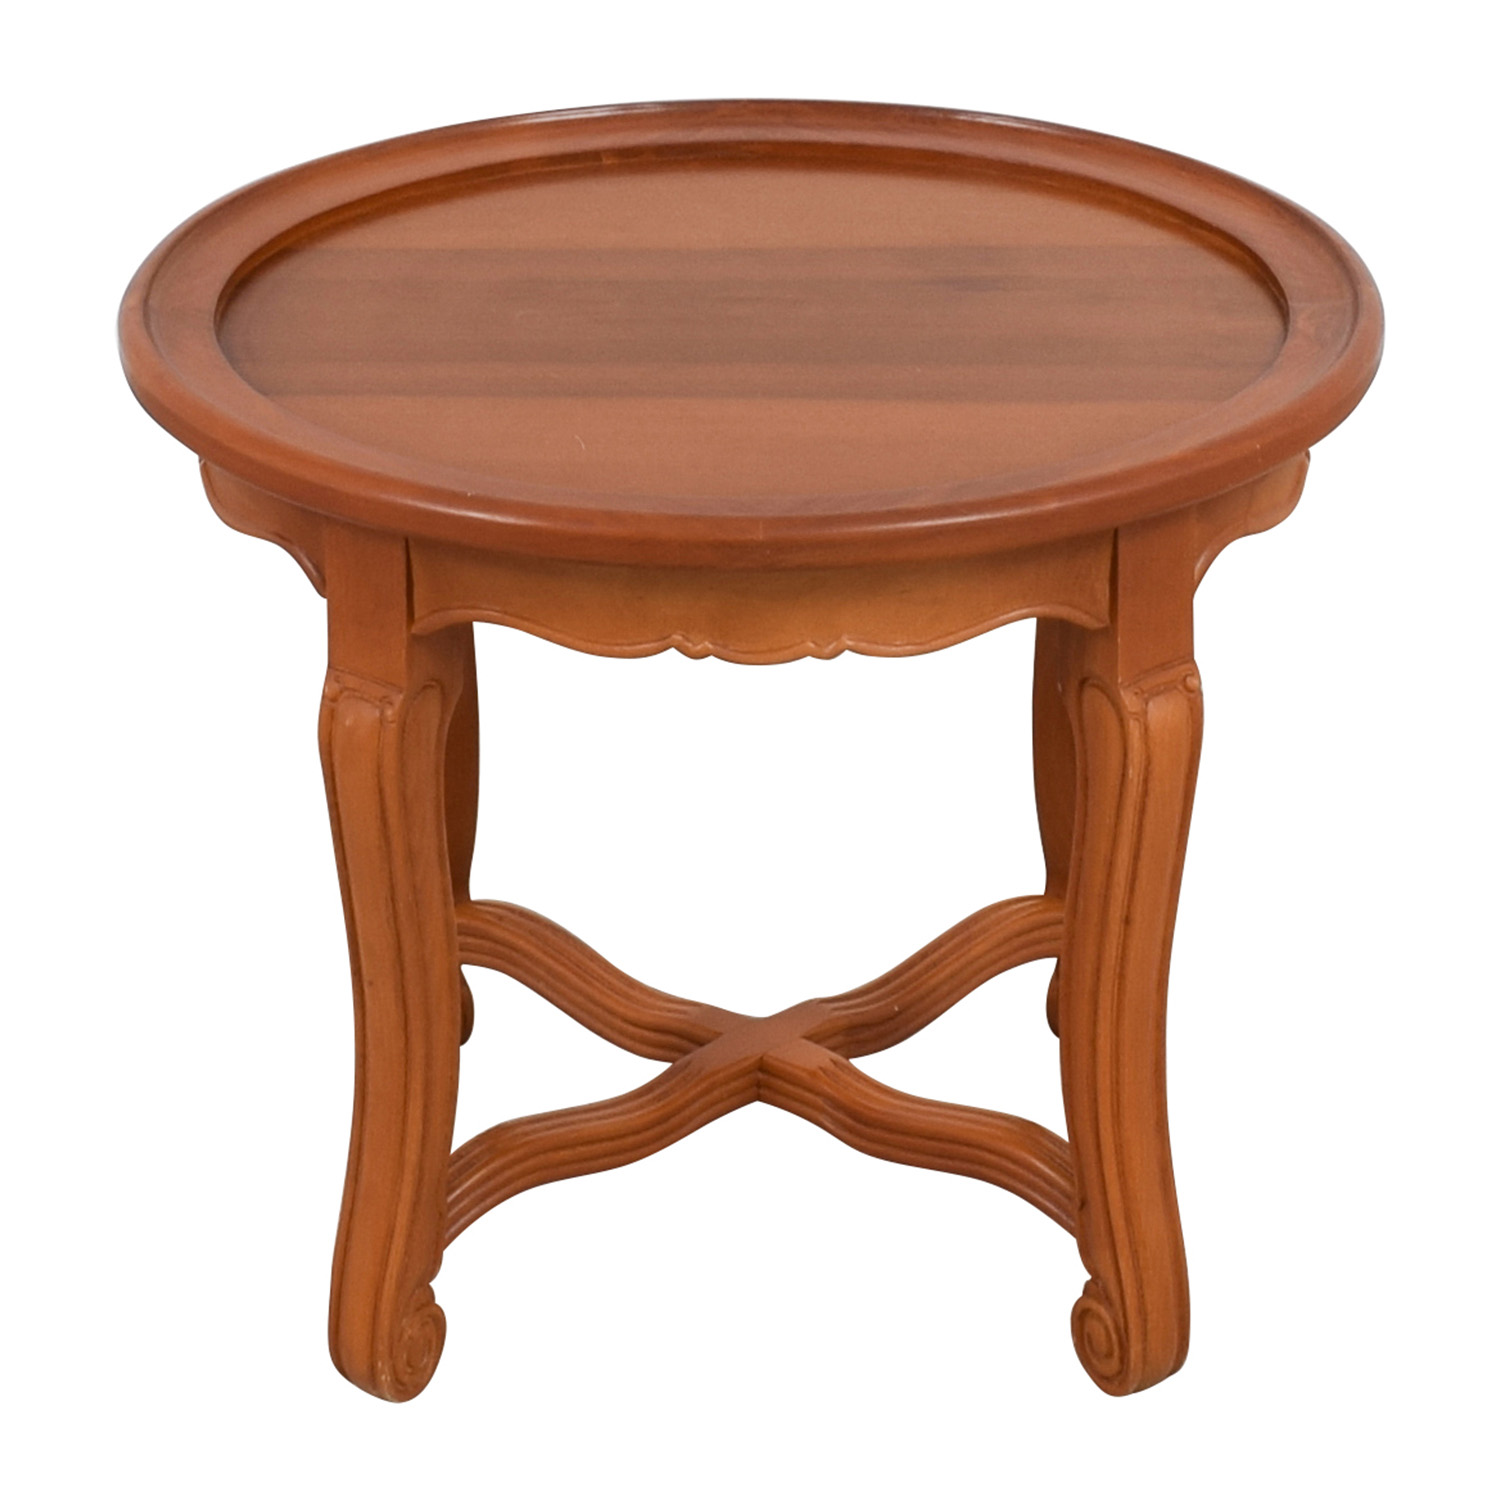 Round Antique Wood Side Table second hand